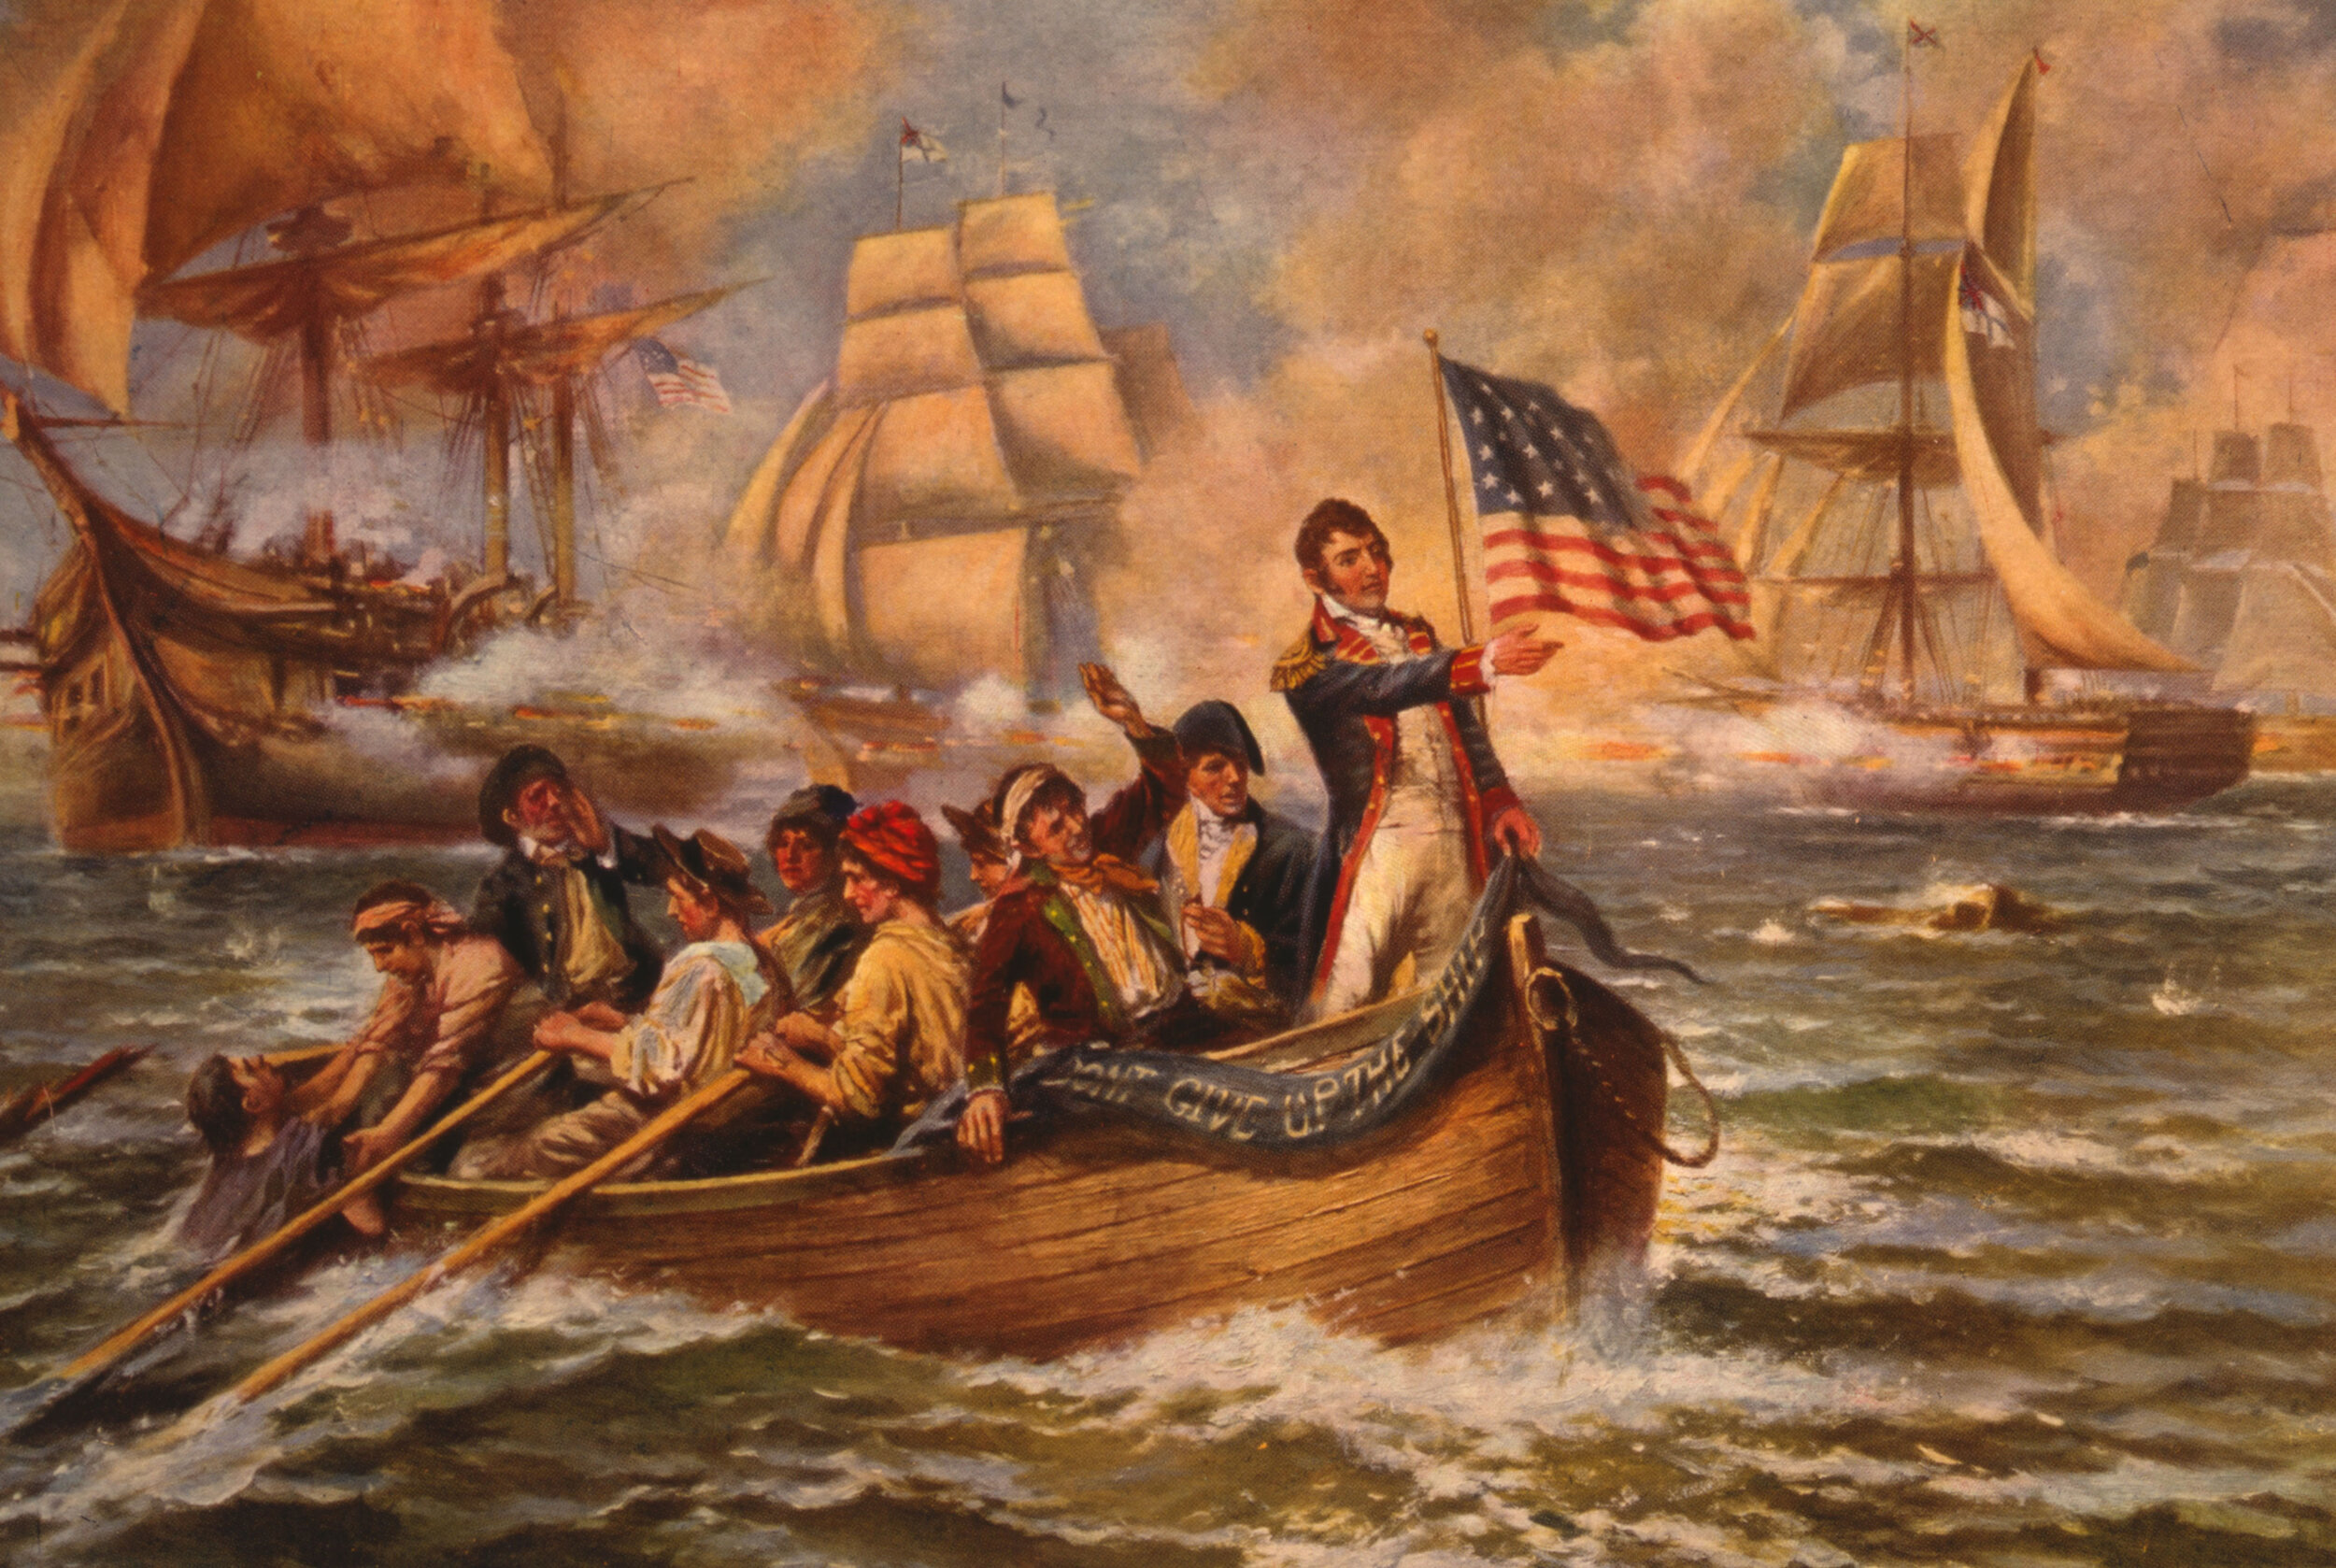 Oliver Hazard Perry is rowed across Lake Erie to take command of the USS  Niagara,  escaping his damaged ship, the USS  Lawrence.